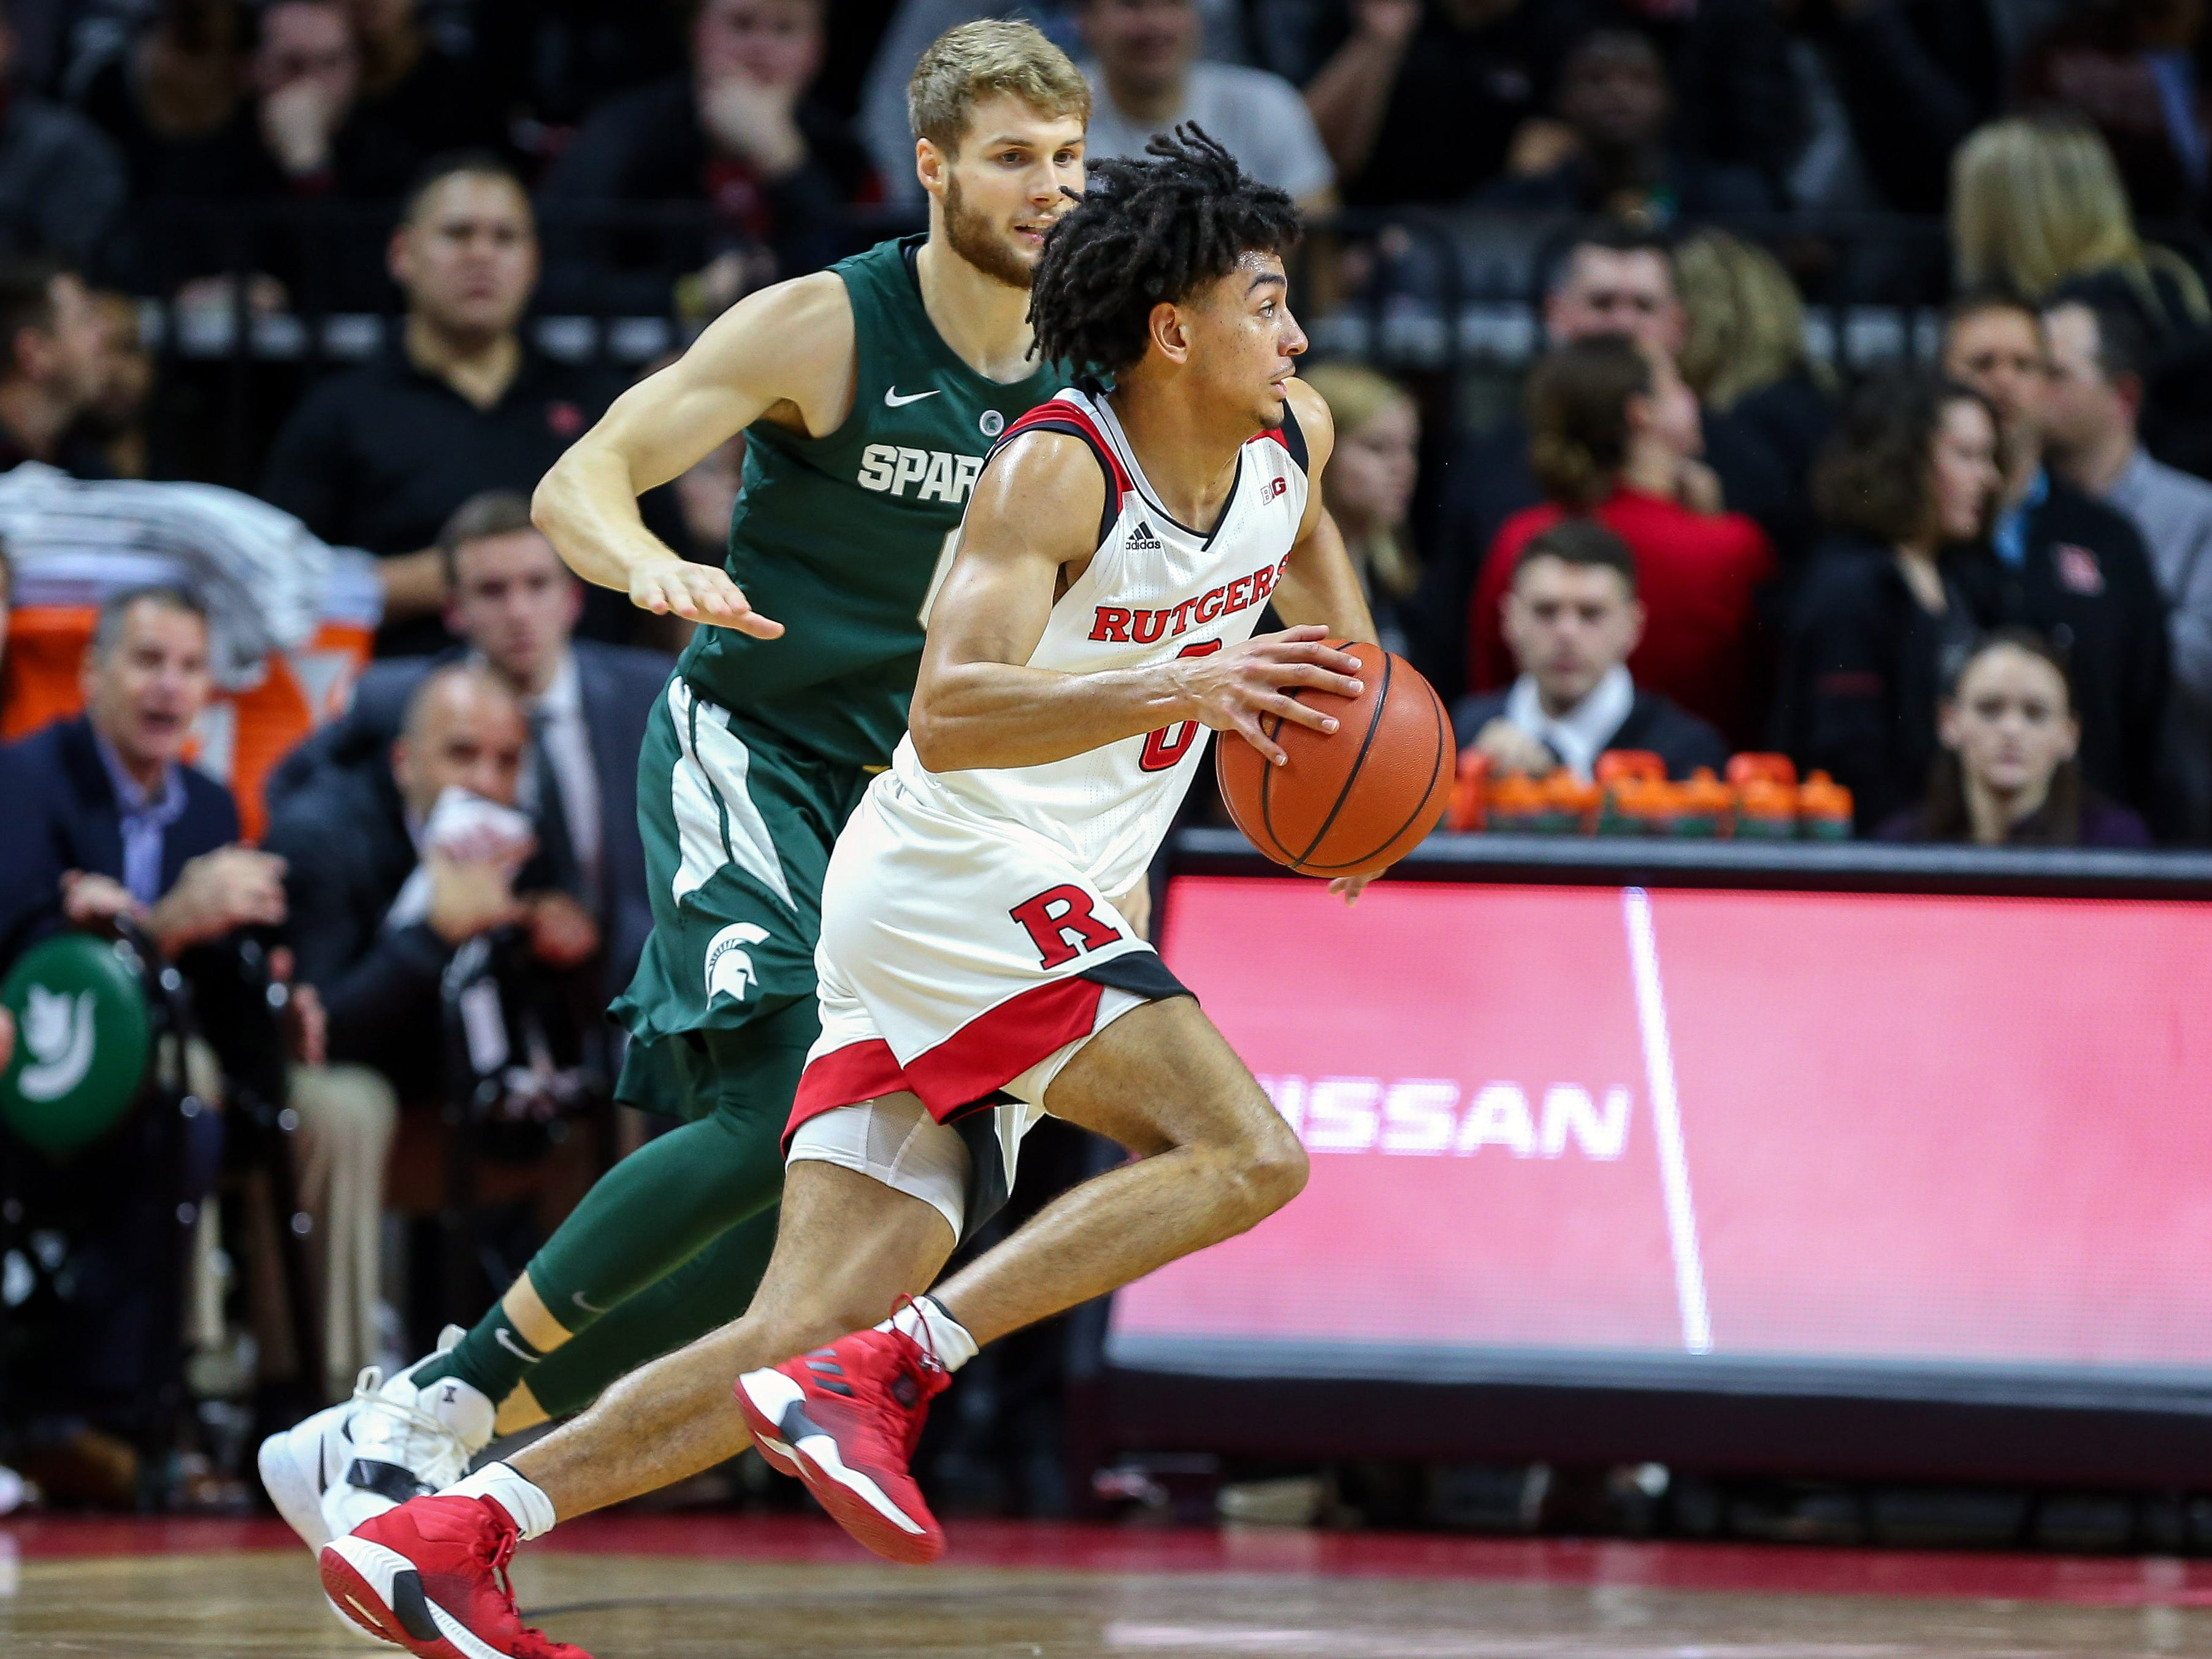 Rutgers Scarlet Knights guard Geo Baker (0) drives to the basket in front of Michigan State Spartans forward Kyle Ahrens (0) during the first half at Rutgers Athletic Center (RAC).